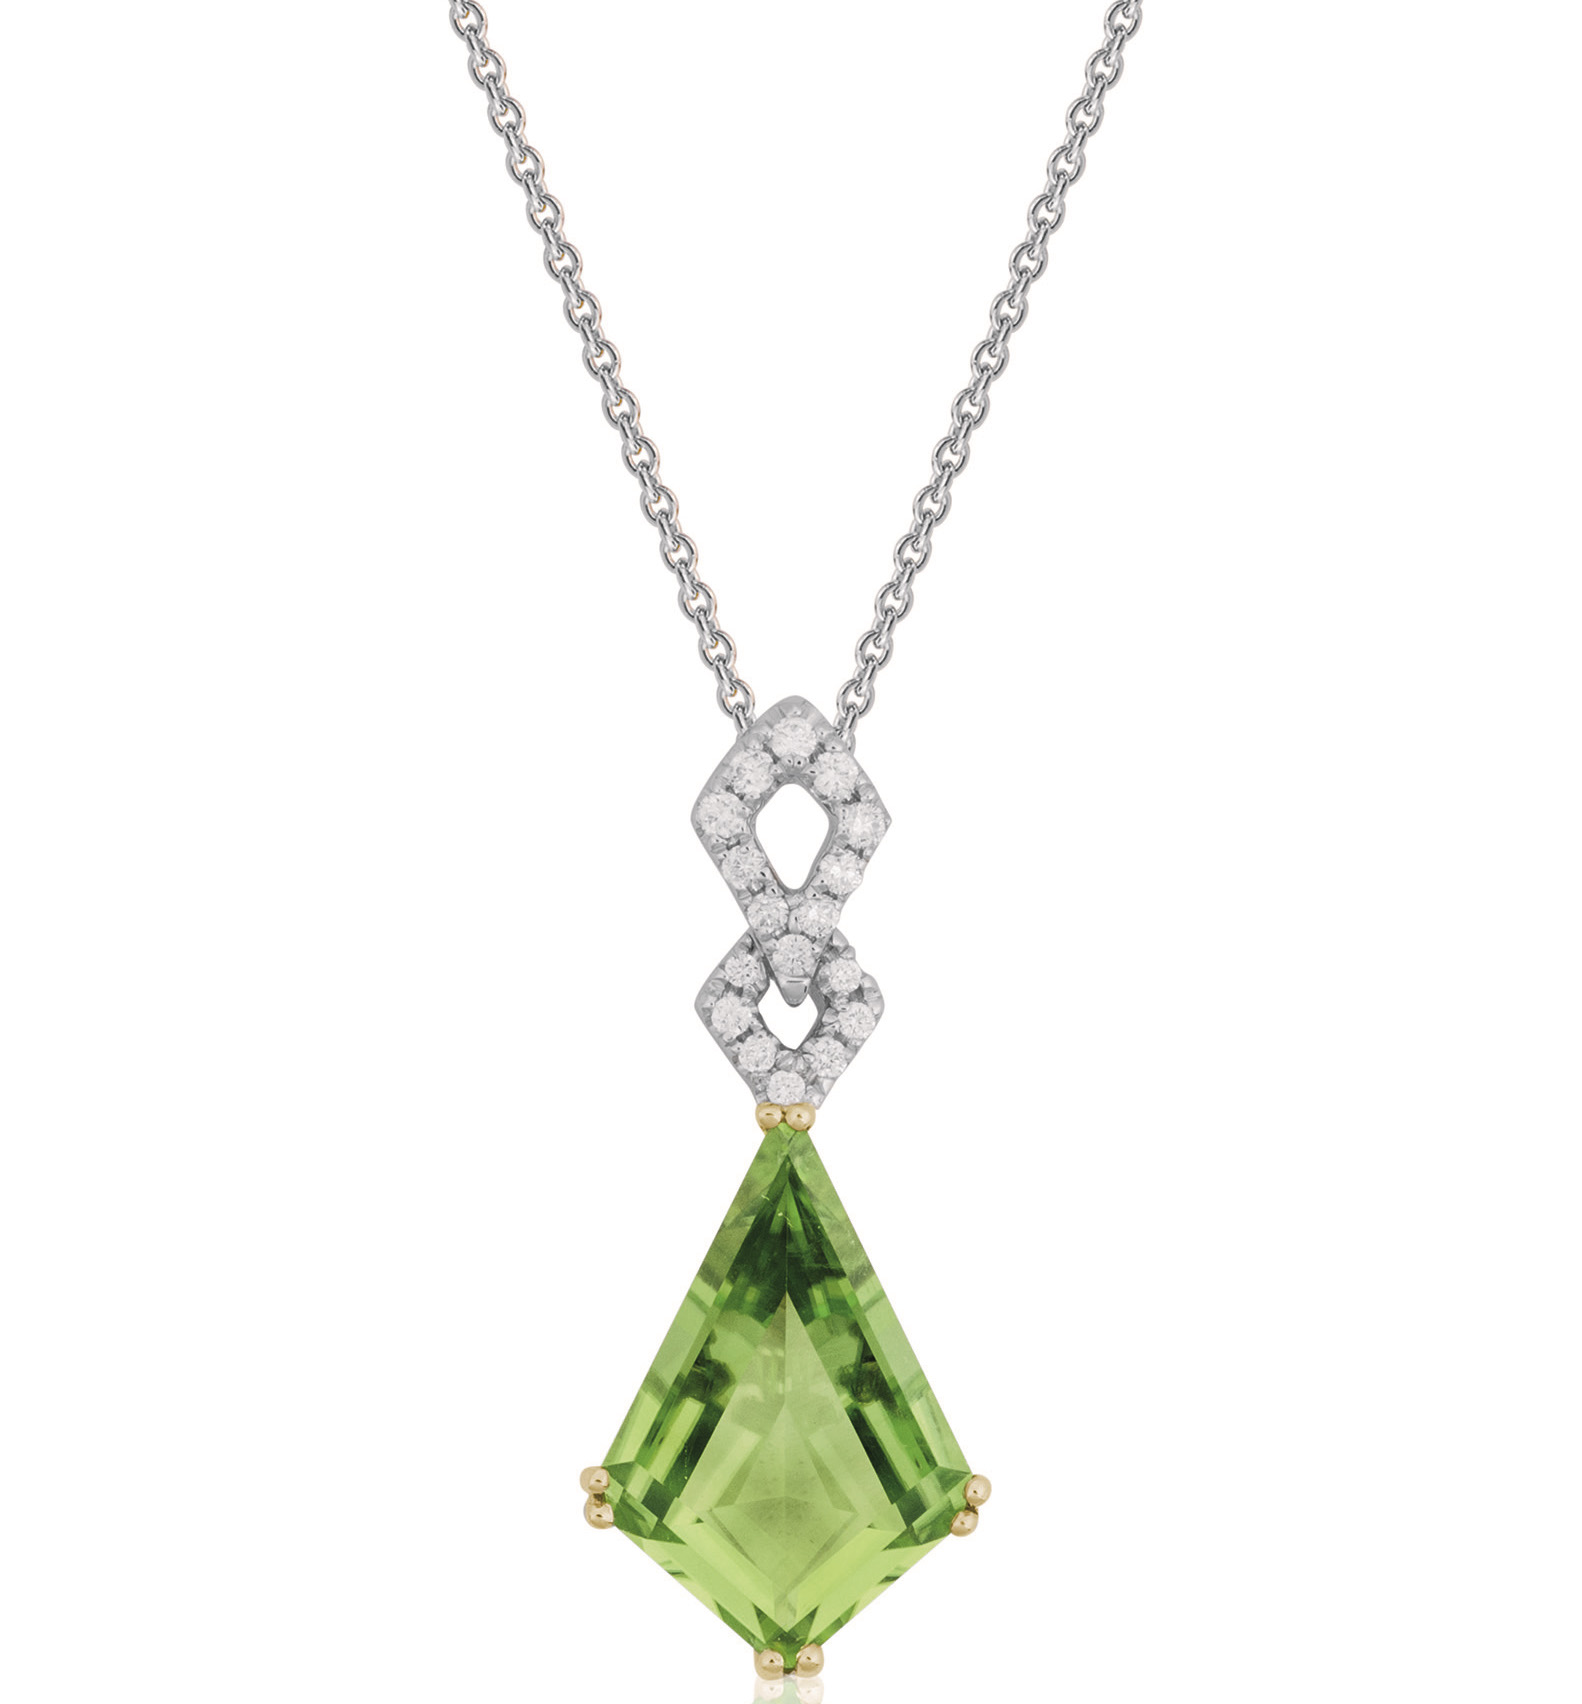 Artistry Ltd. kite peridot pendant | JCK On Your Market